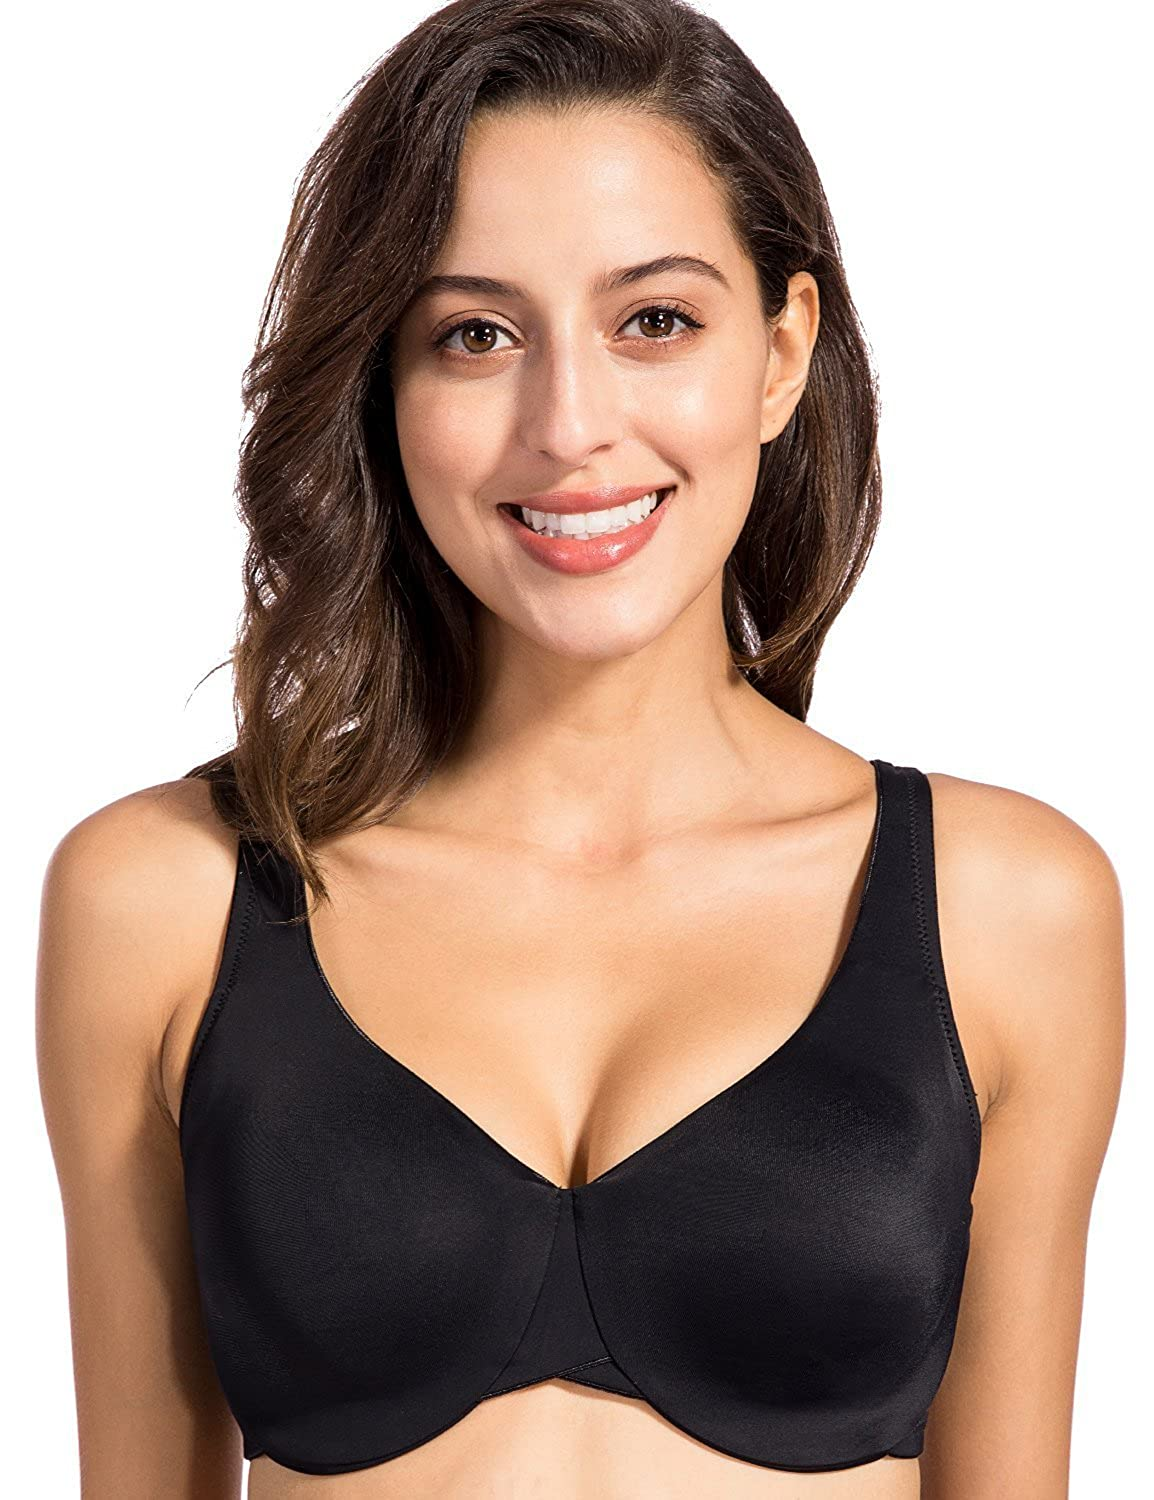 d80cf7d4be460 DELIMIRA Womens Full Coverage Underwire Non Padded Soft Seamless Minimizer  Bra